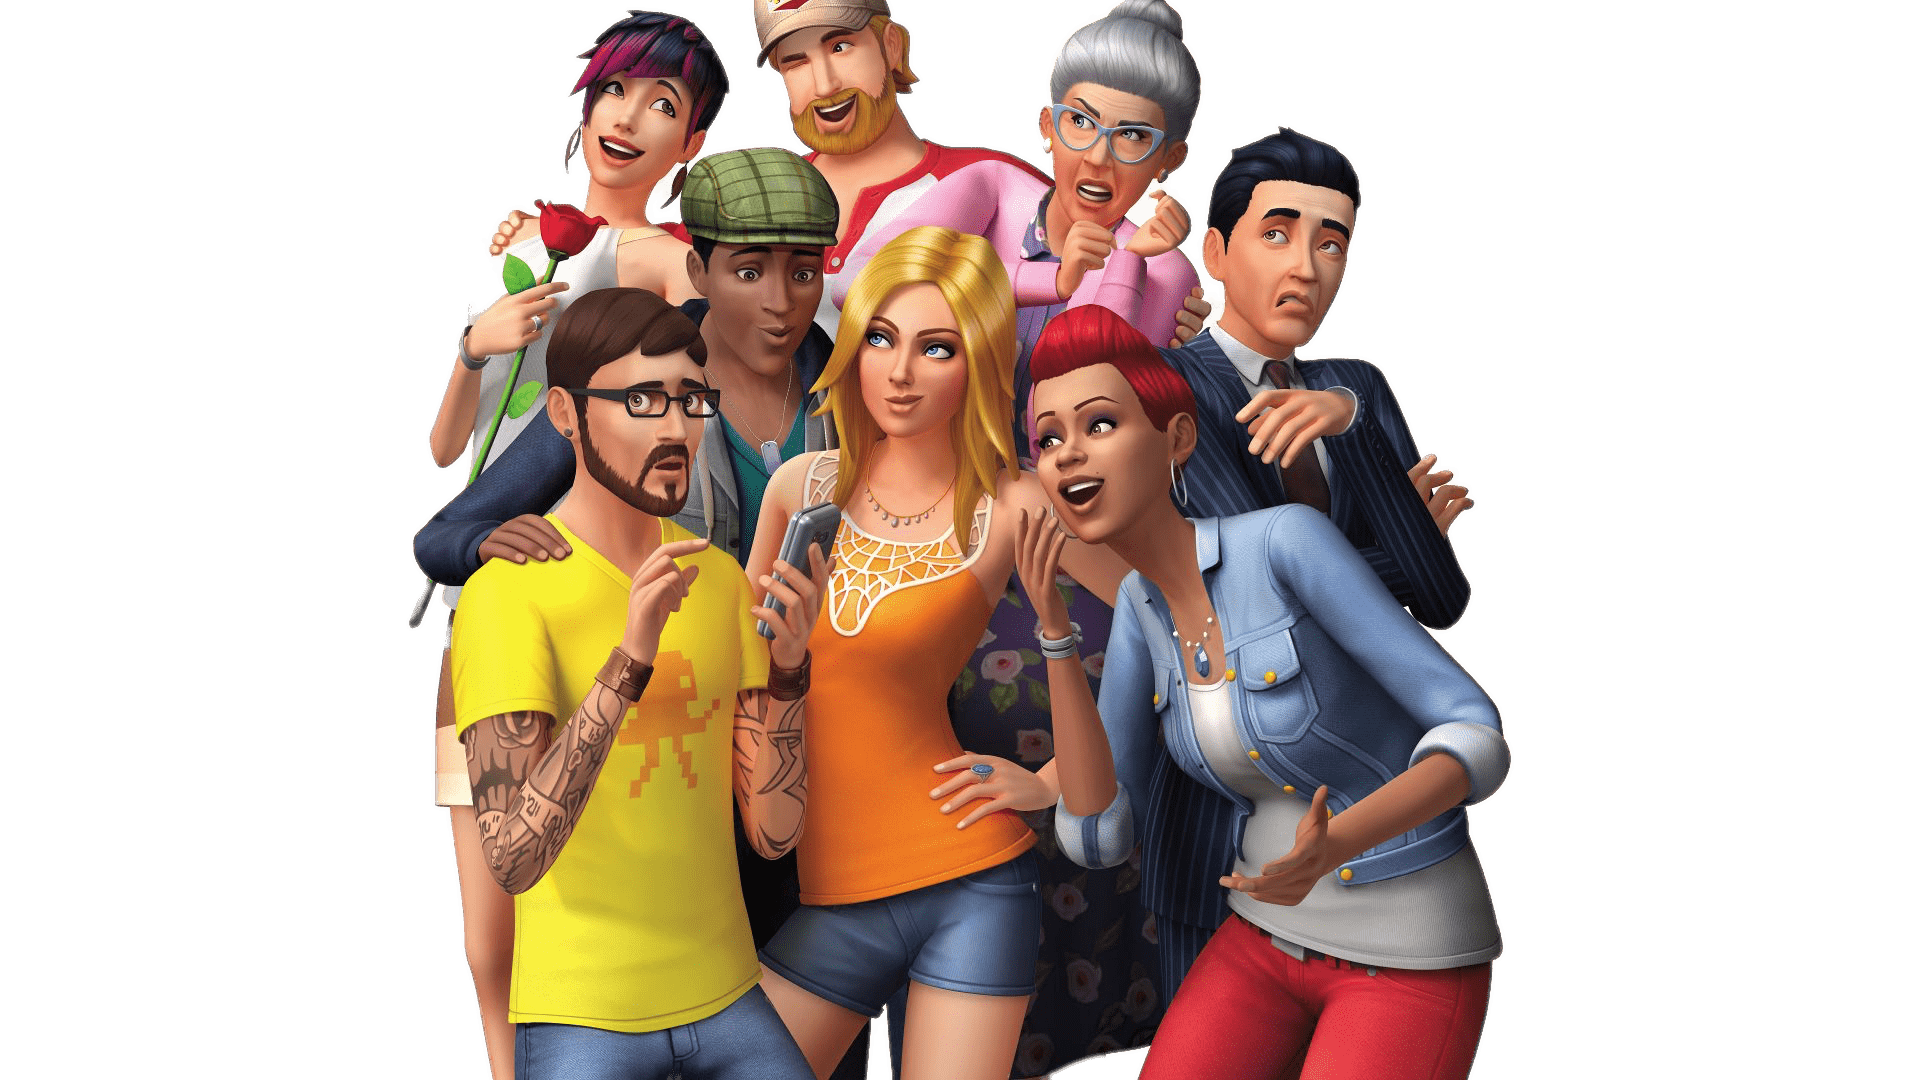 Character transparent sims. The png stickpng games